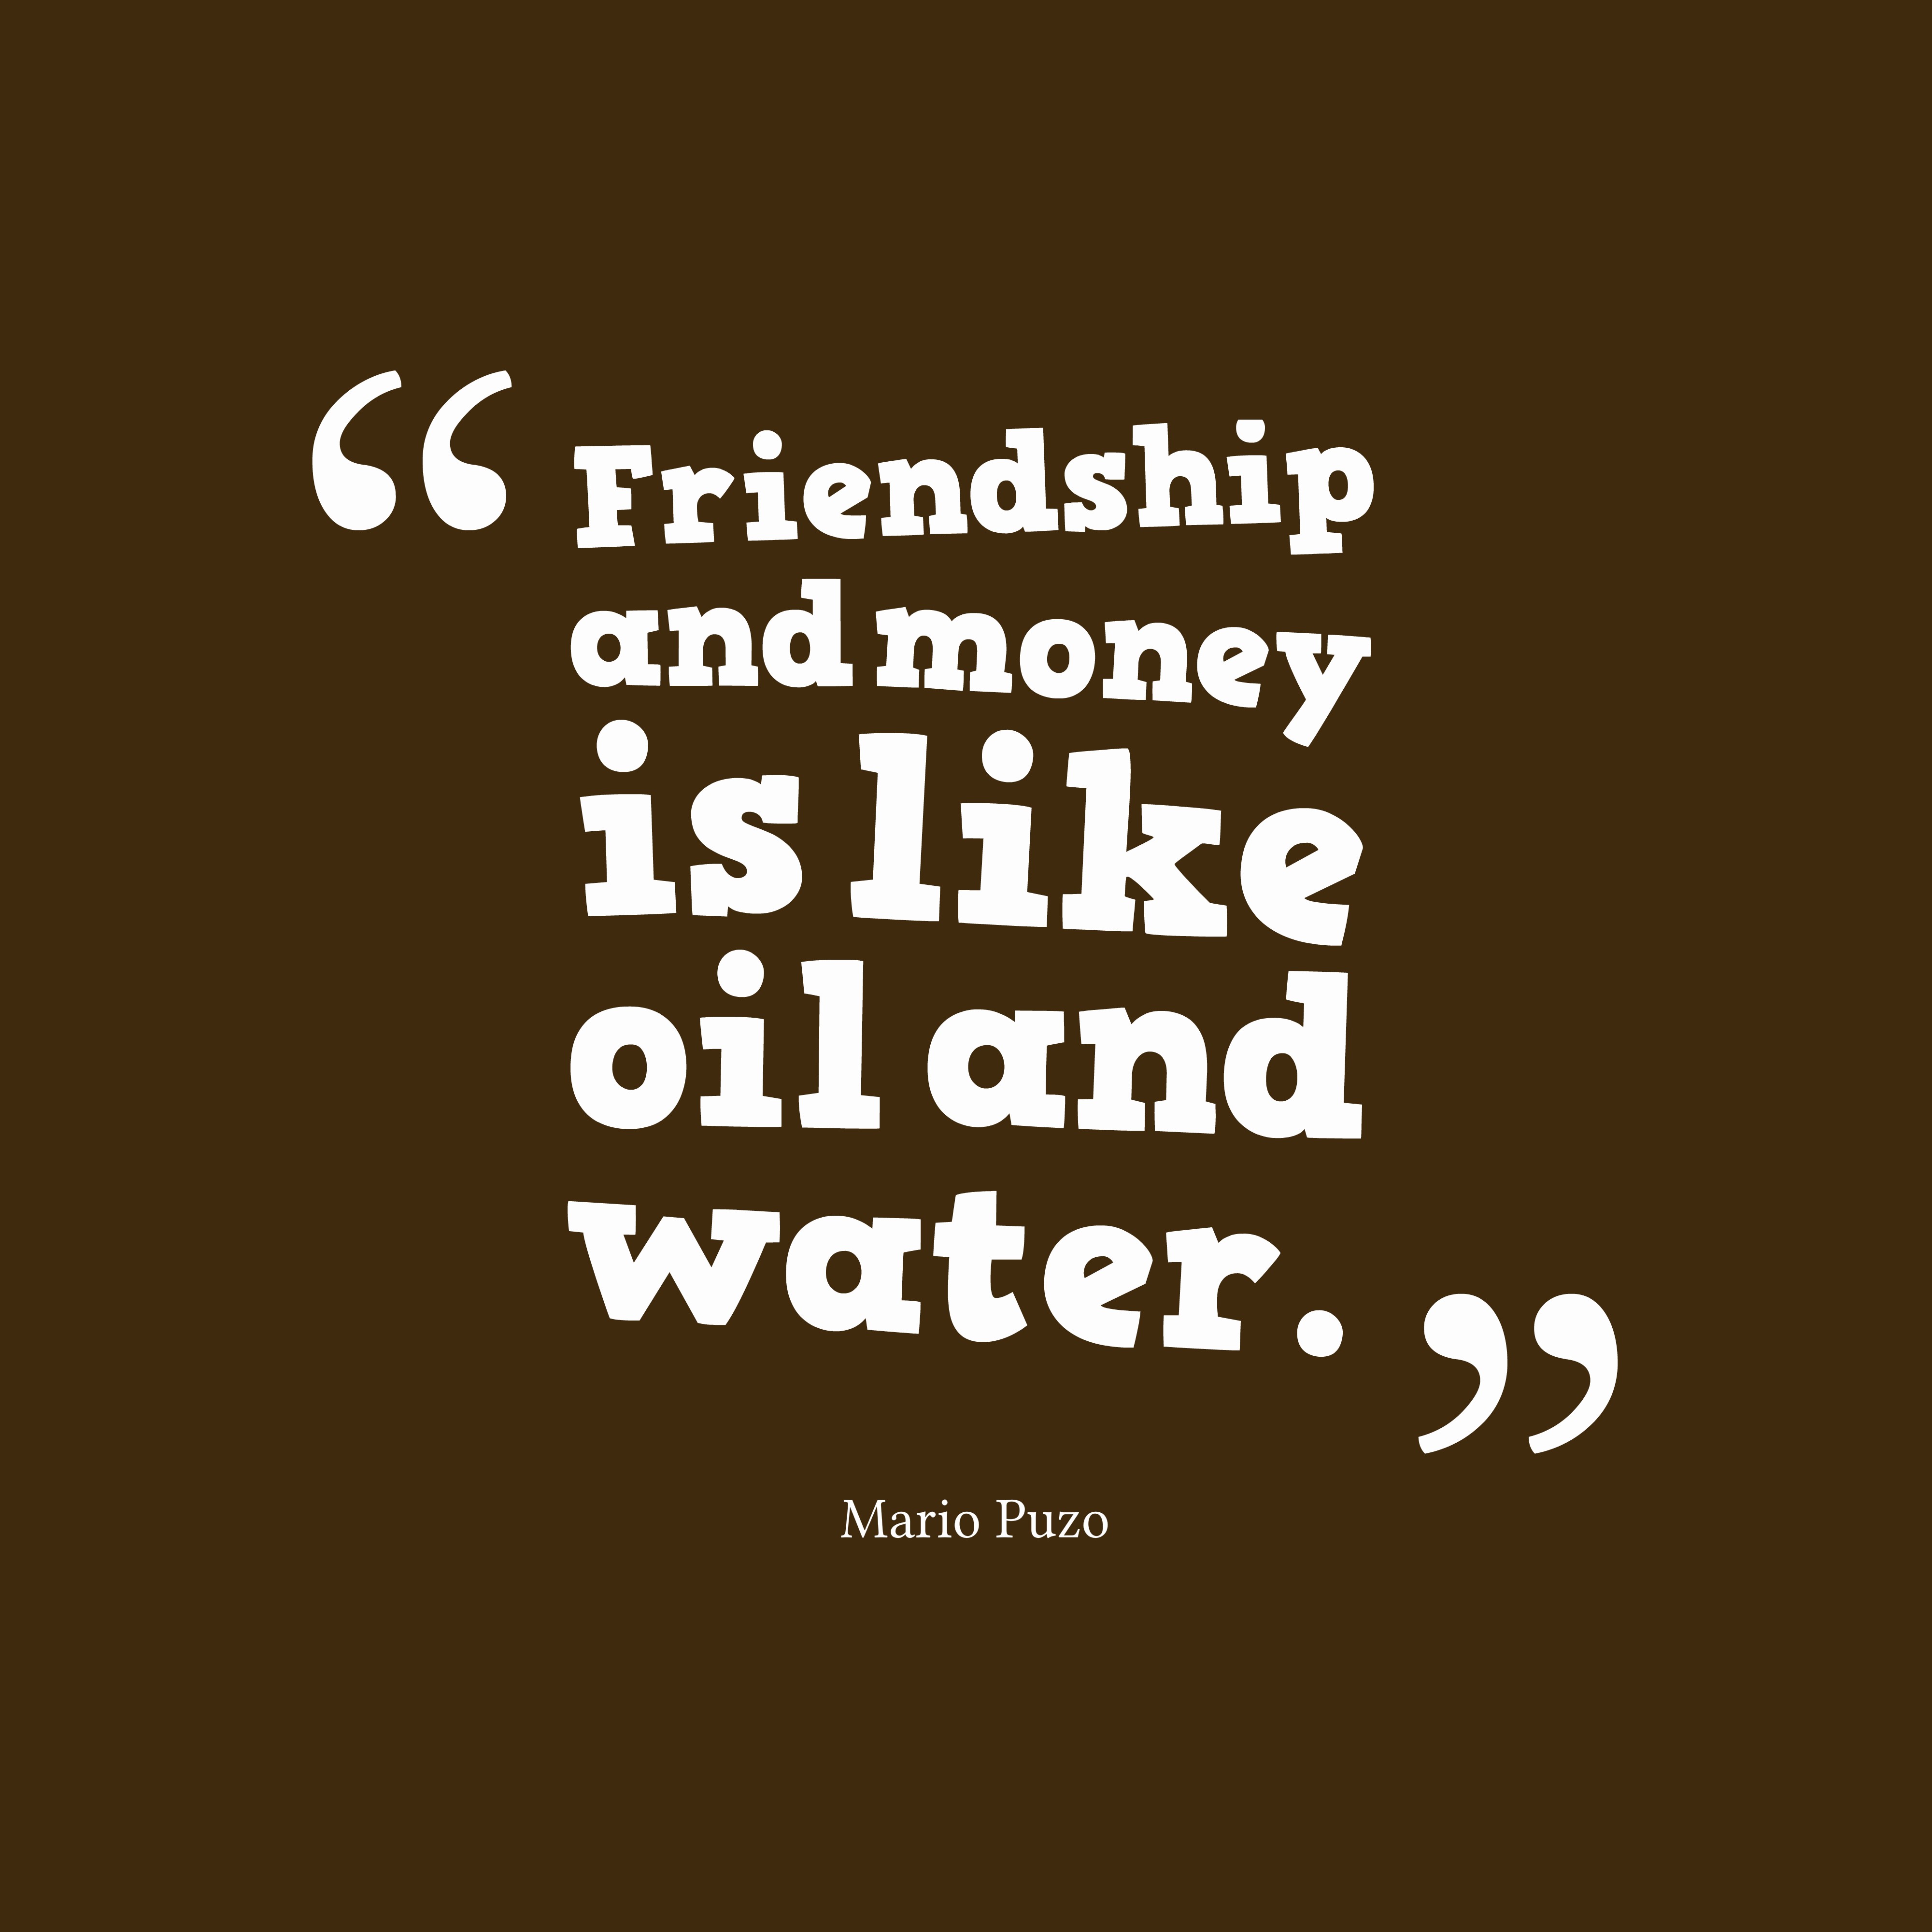 Quotes About Love For Him: Gangsta Quotes About Money. QuotesGram